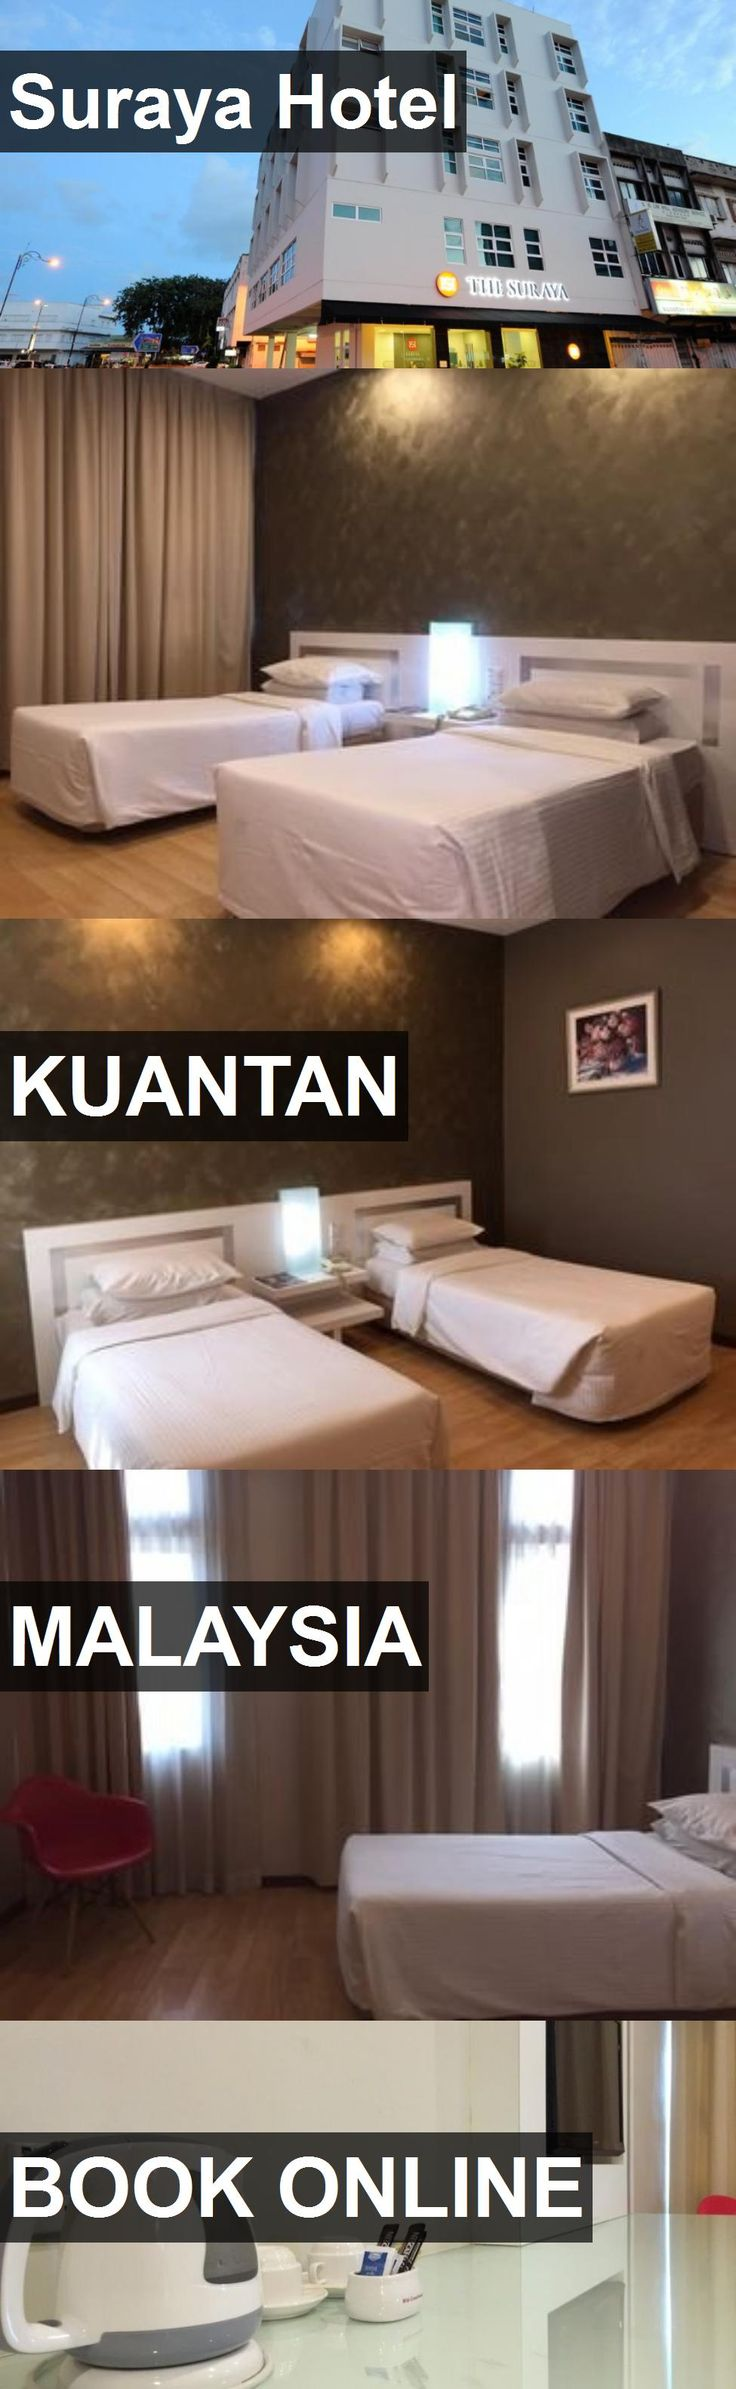 Suraya Hotel in Kuantan, Malaysia. For more information, photos, reviews and best prices please follow the link. #Malaysia #Kuantan #travel #vacation #hotel